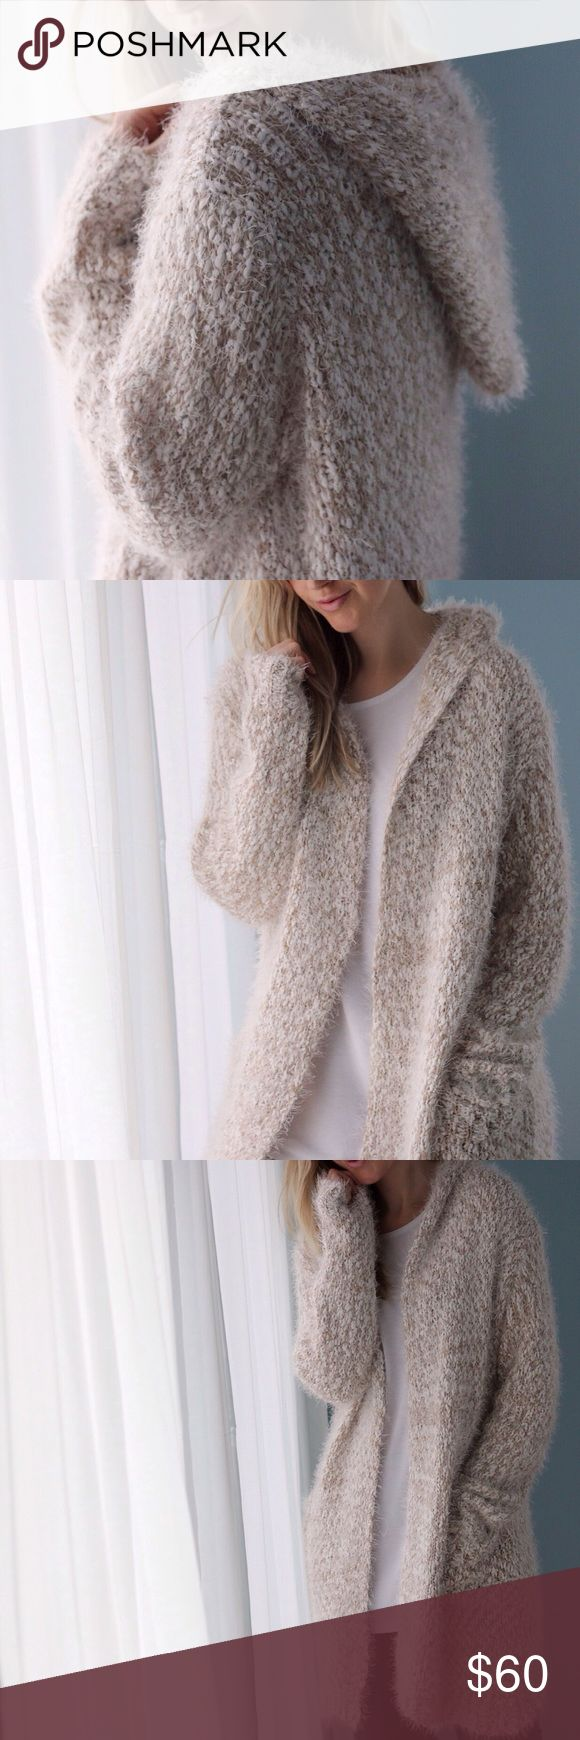 Manhattan Soft Fuzzy Sweater ◽️The Manhattan Fuzzy Soft Sweater is gorgeous and cozy = THE perfect winter piece!  2 roomy front pockets and stylish hoodie. So soft you won't want to take this off! Beige and white blend easily matches most outfits. ❄️Non itchy. Poly. New with tag.  ▫️Sizes available: S/M and L ▫️I am modeling size S/M ▫️Price is firm  Photos are my own Sweaters Cardigans